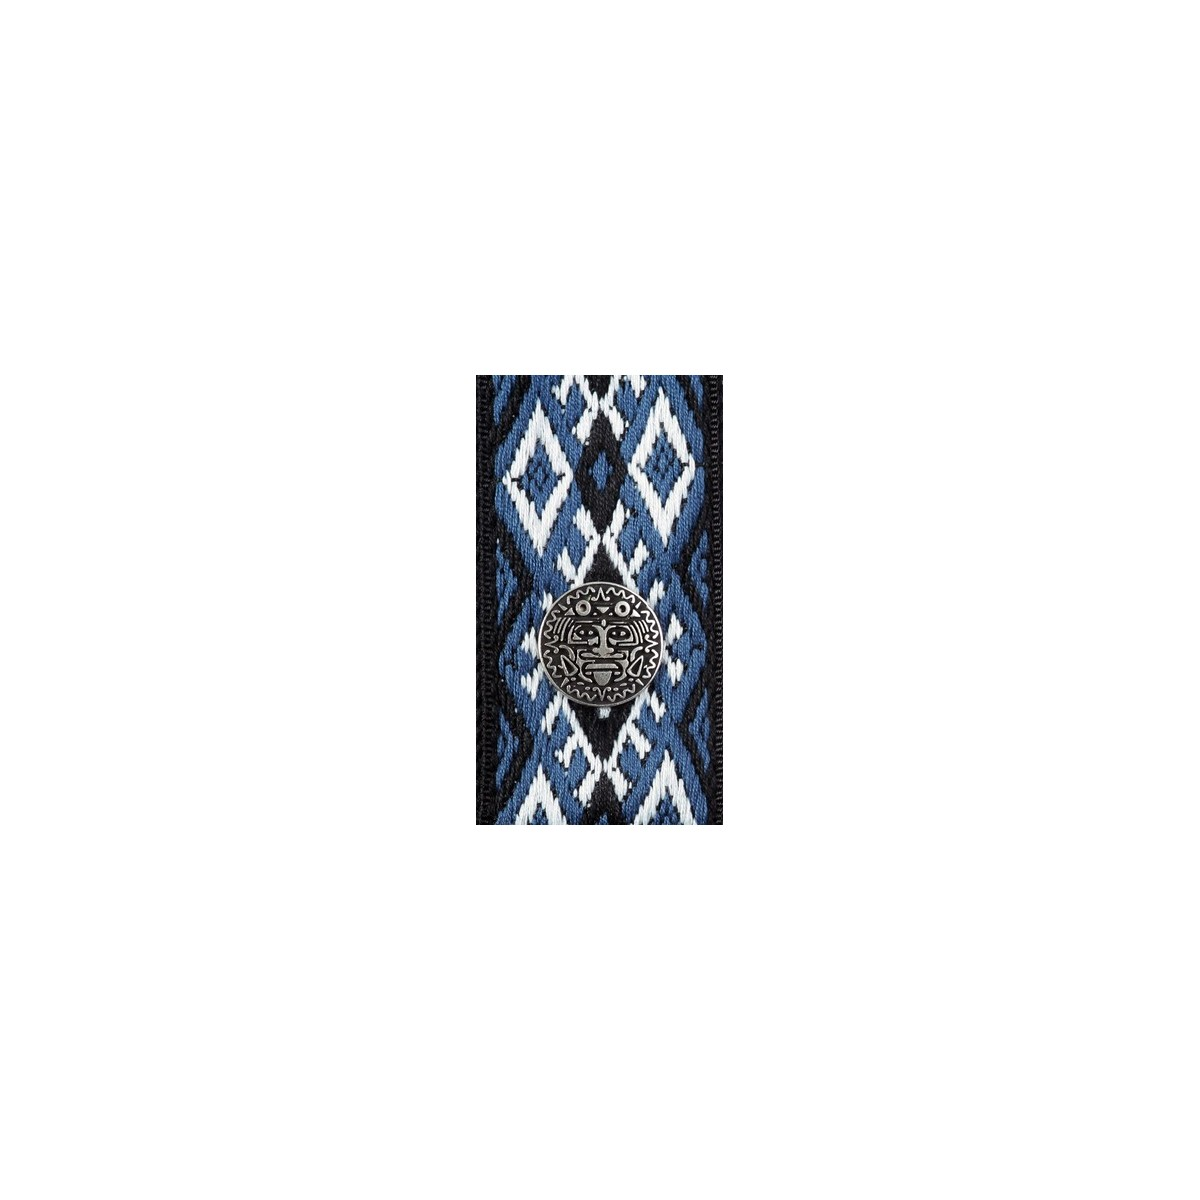 Tonepros Avt2g Wraparound Bridge Gibson Chrome